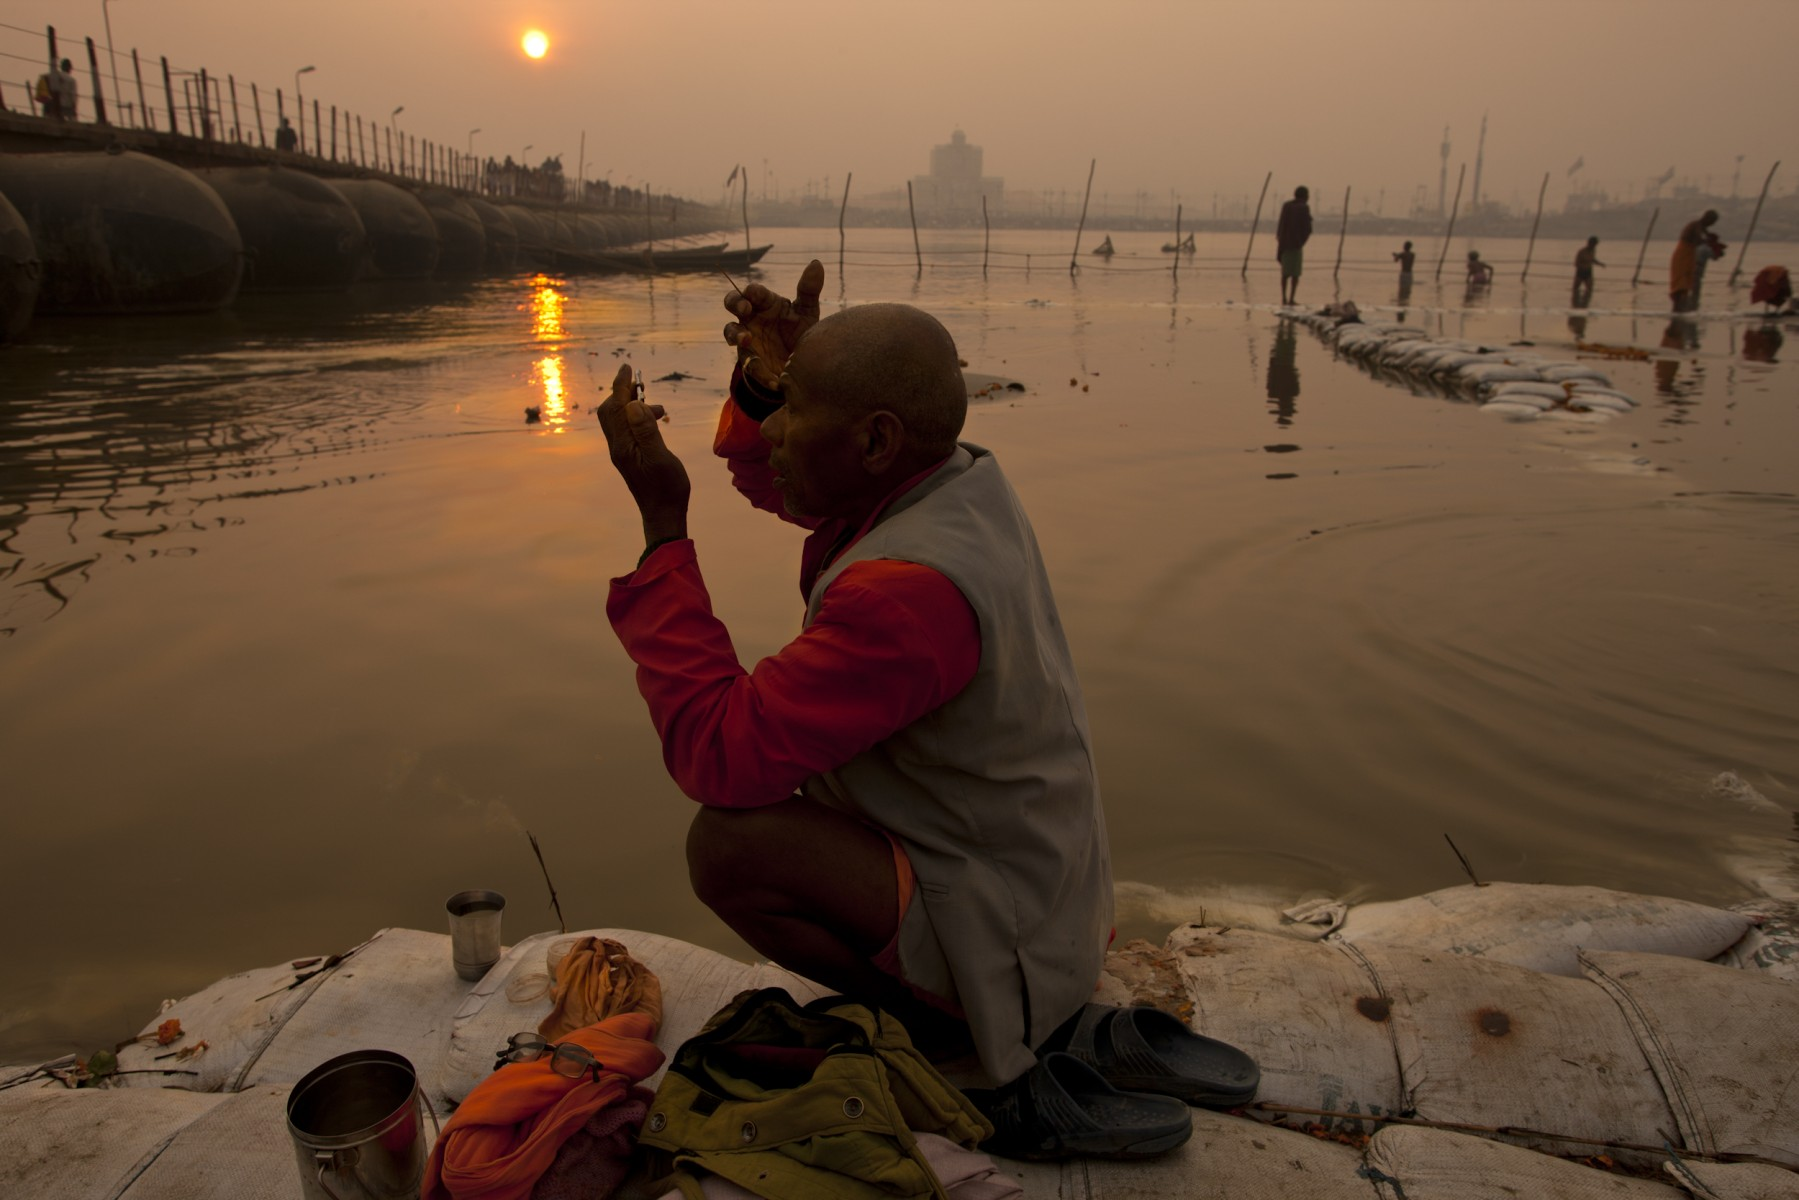 Sunrise at the Kumbh